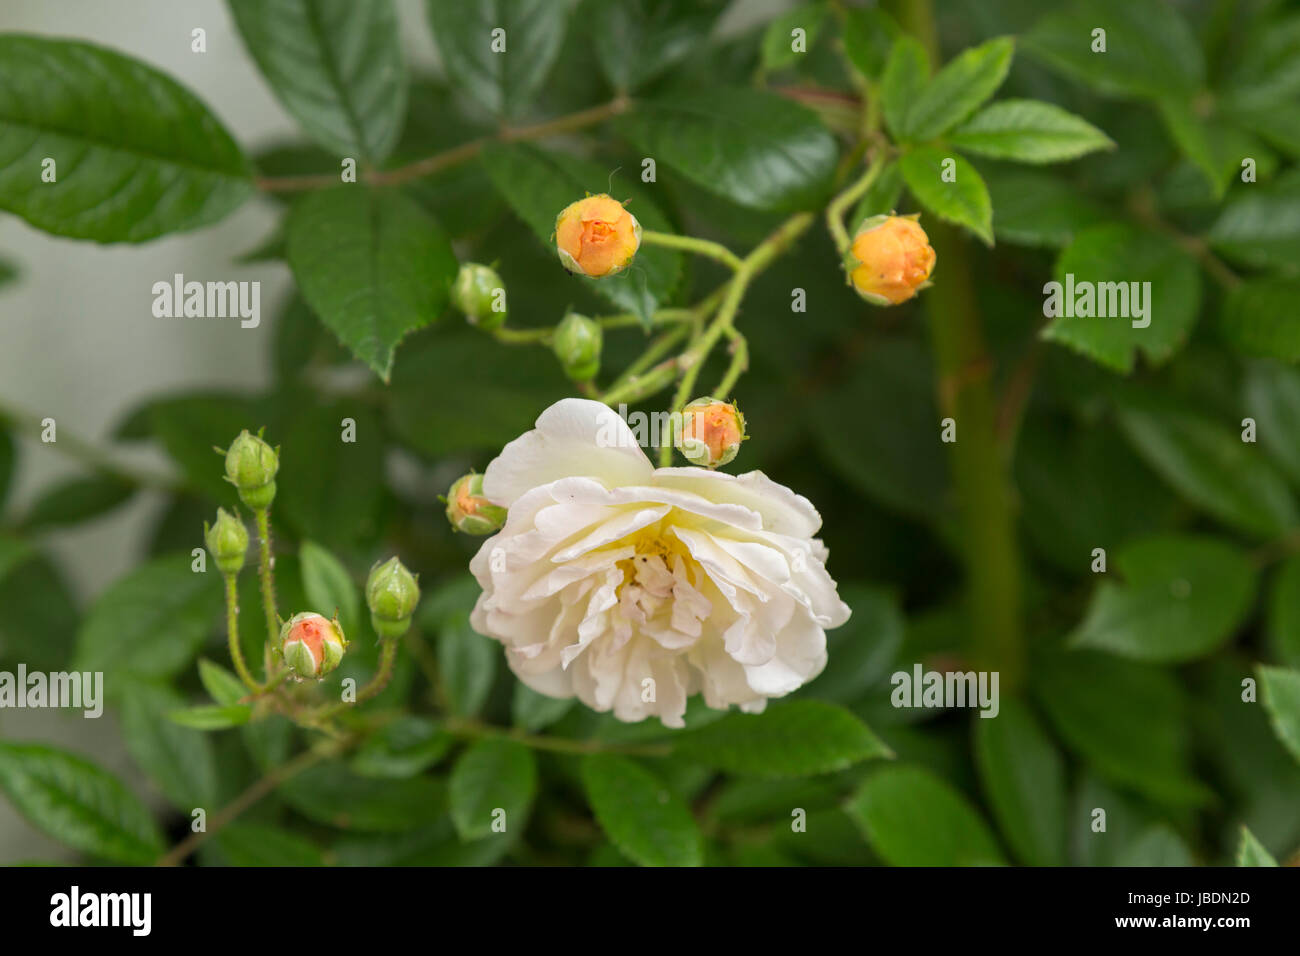 Rosa 'Ghislaine de Feligonde', a Musk Rambling Rose. Fragrant semi double white /apricot blooms. In bud - Stock Image